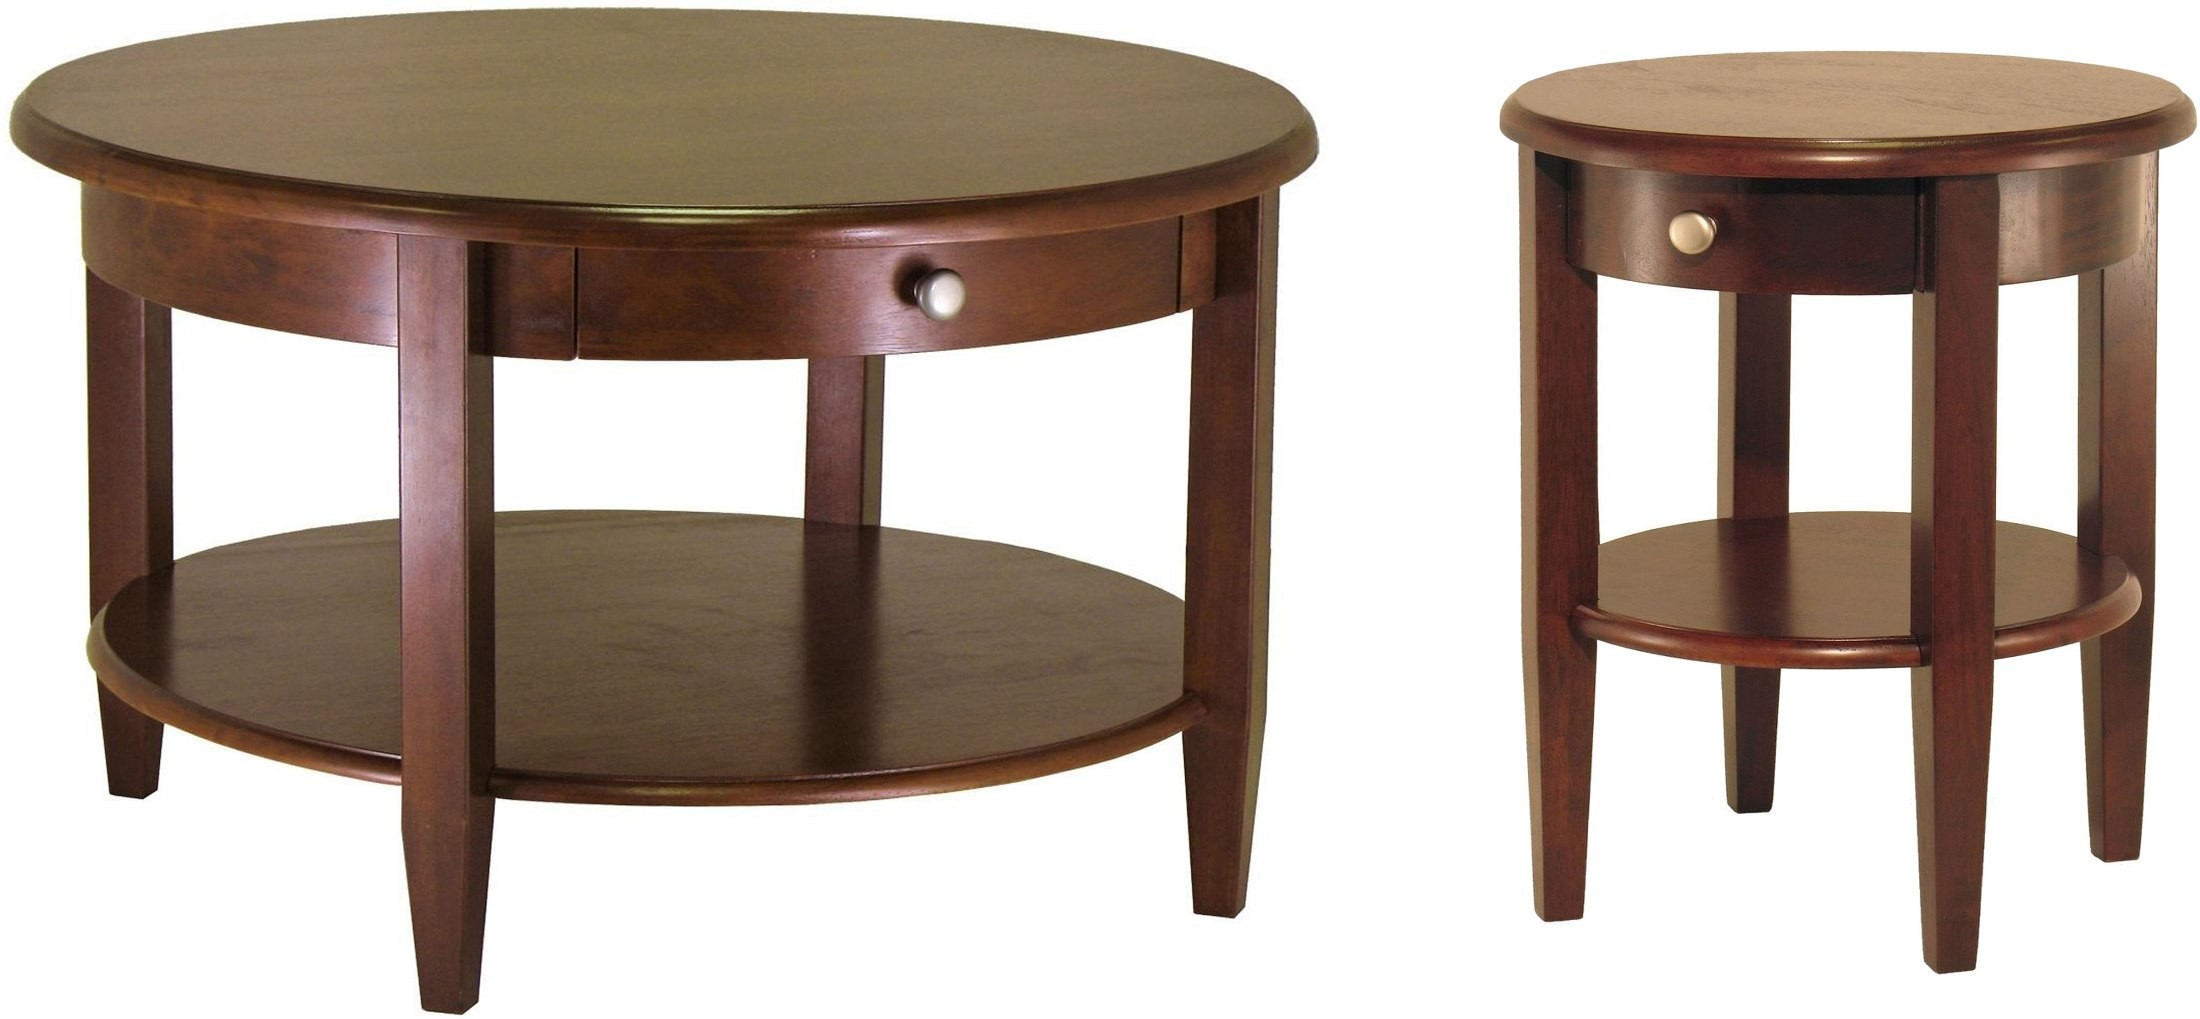 Concord Drawer Round Coffee Table 94231 Winsome